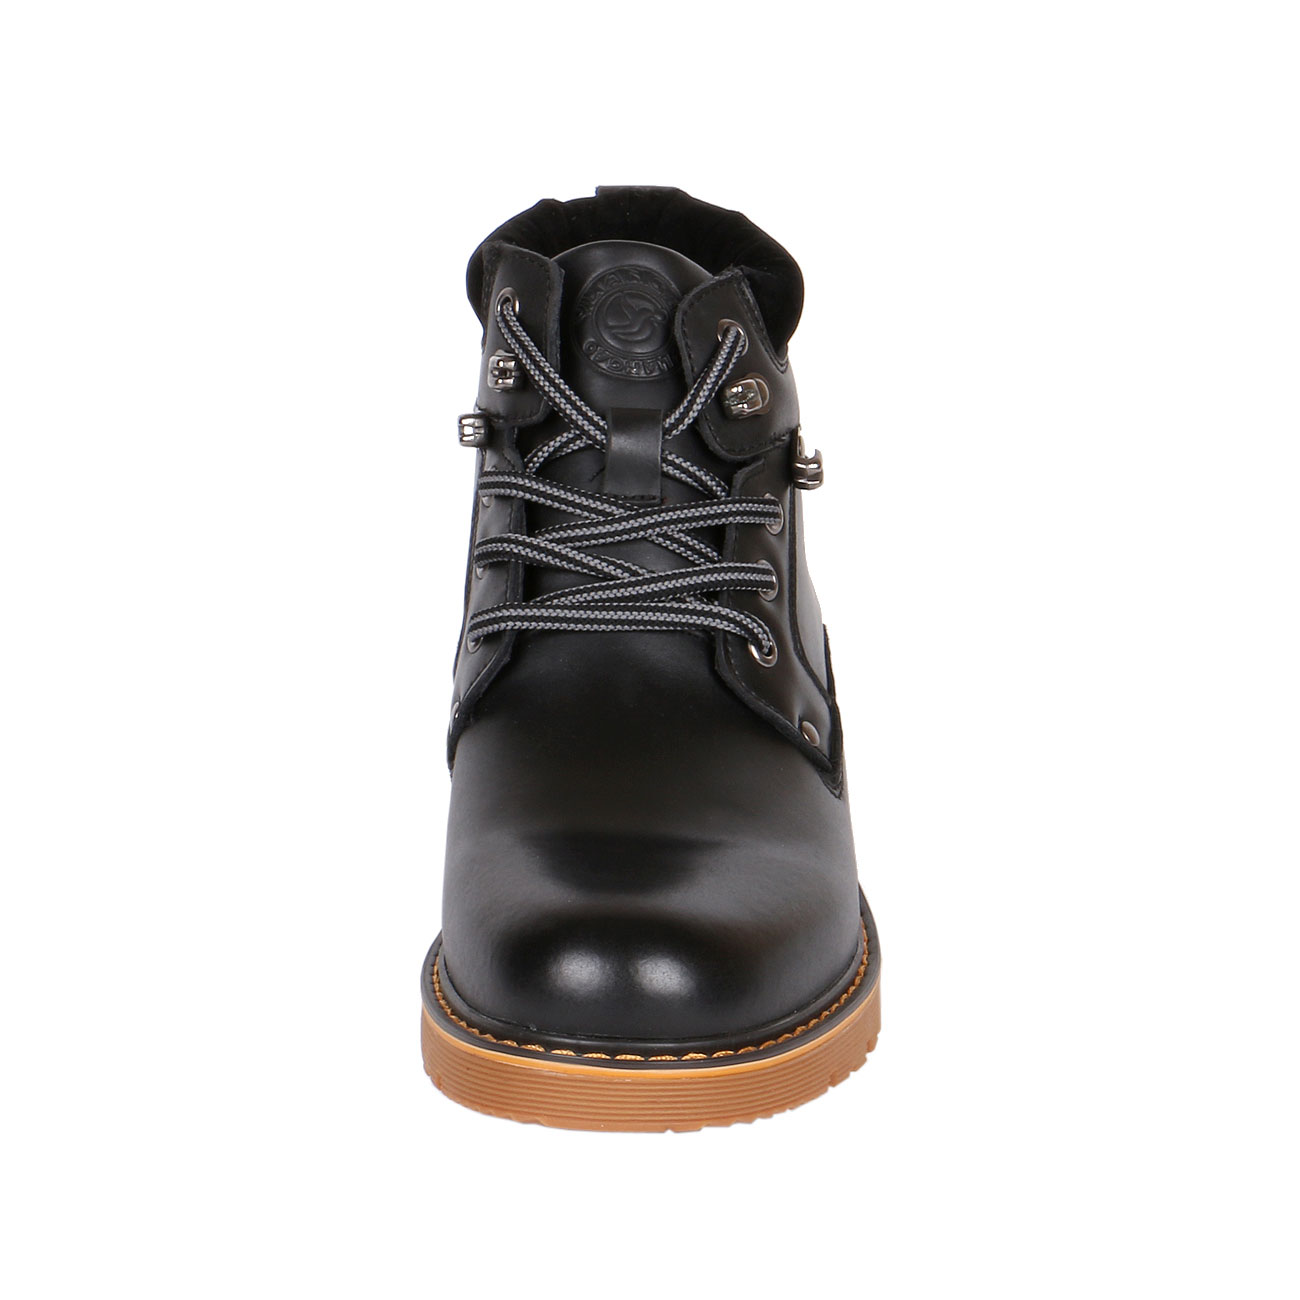 Men's Work Boots for Height-view2